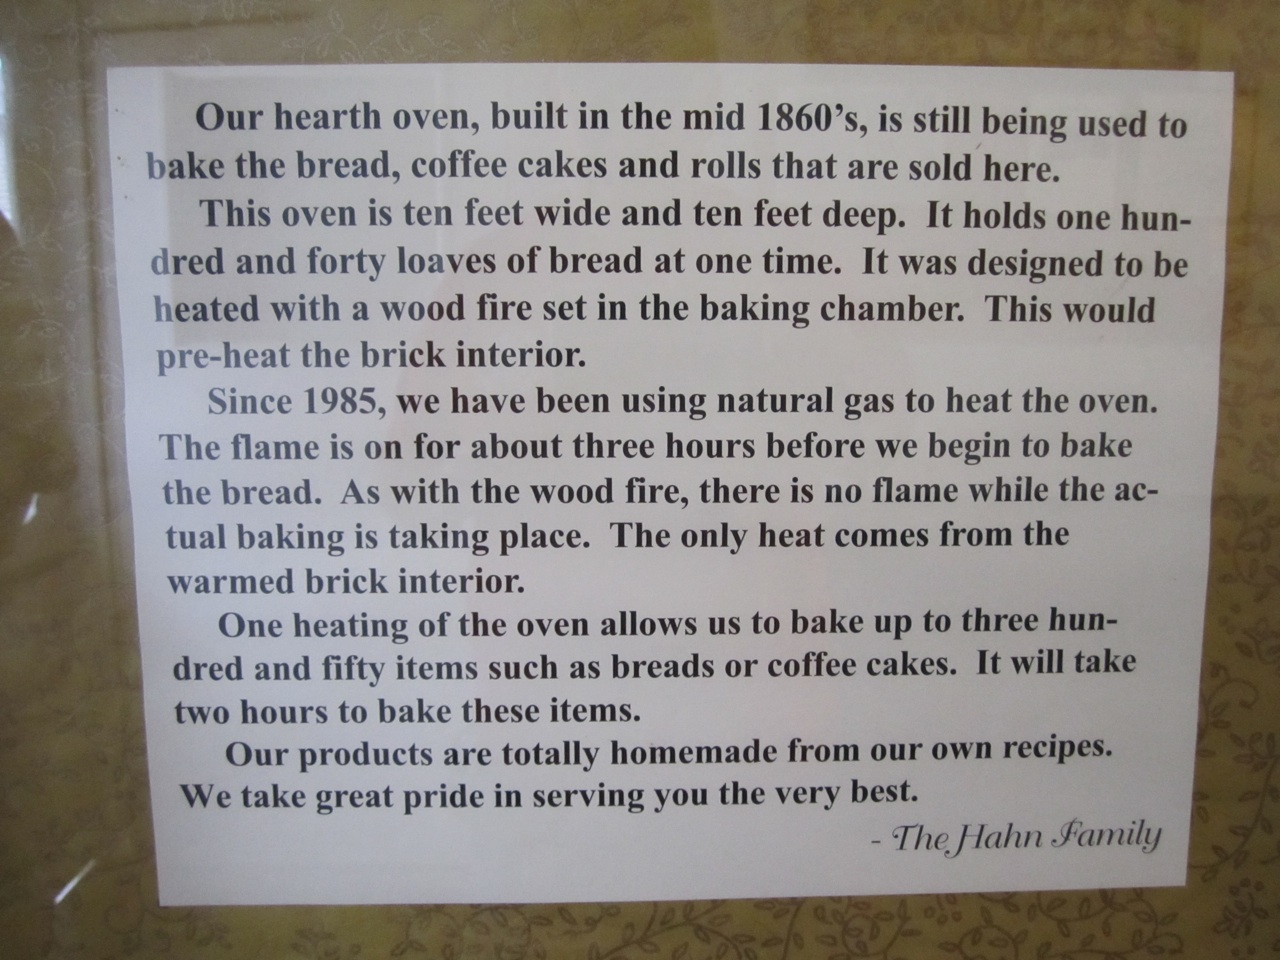 A Little History Of Hahn's Bakery.